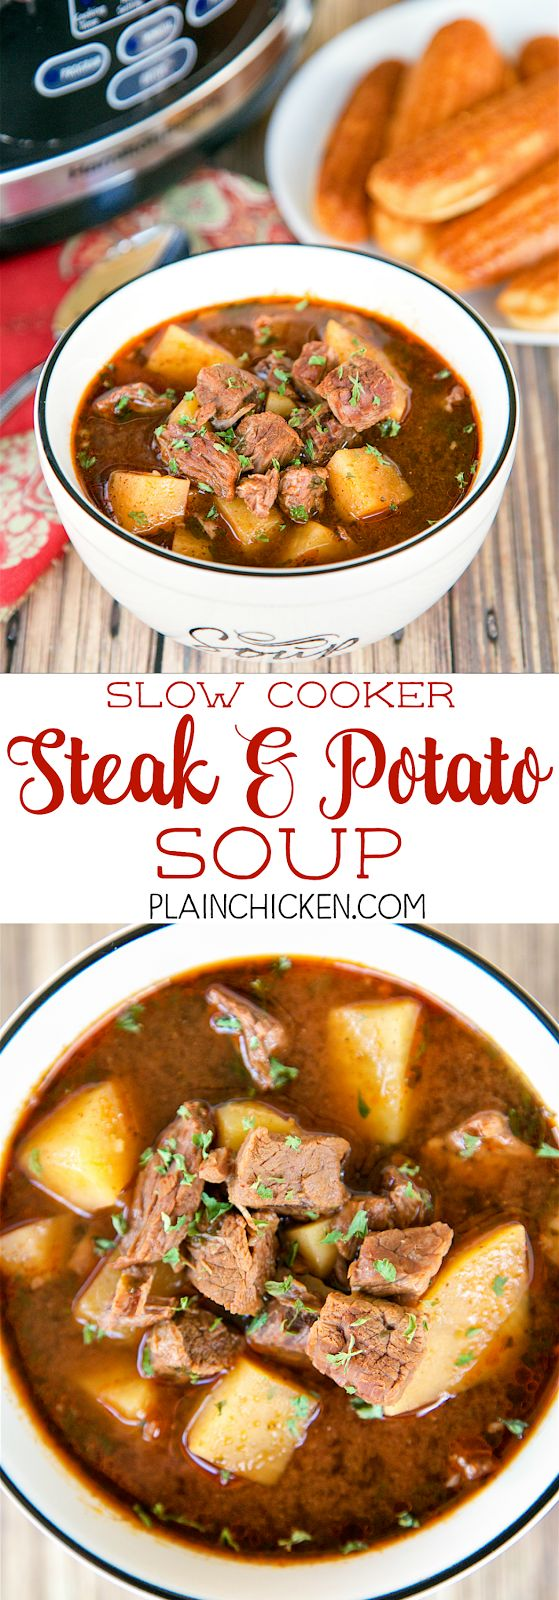 Slow Cooker Steak and Potato Soup - AMAZING! Everyone loved this easy soup!! Just dump everything in the slow cooker and let it do all the work. Stew meat, onion, yukon gold potatoes, beef broth, steak sauce, chili powder, cumin, cayenne pepper and parsley. Serve with cornbread for an easy and delicious weeknight meal guaranteed to please everyone!